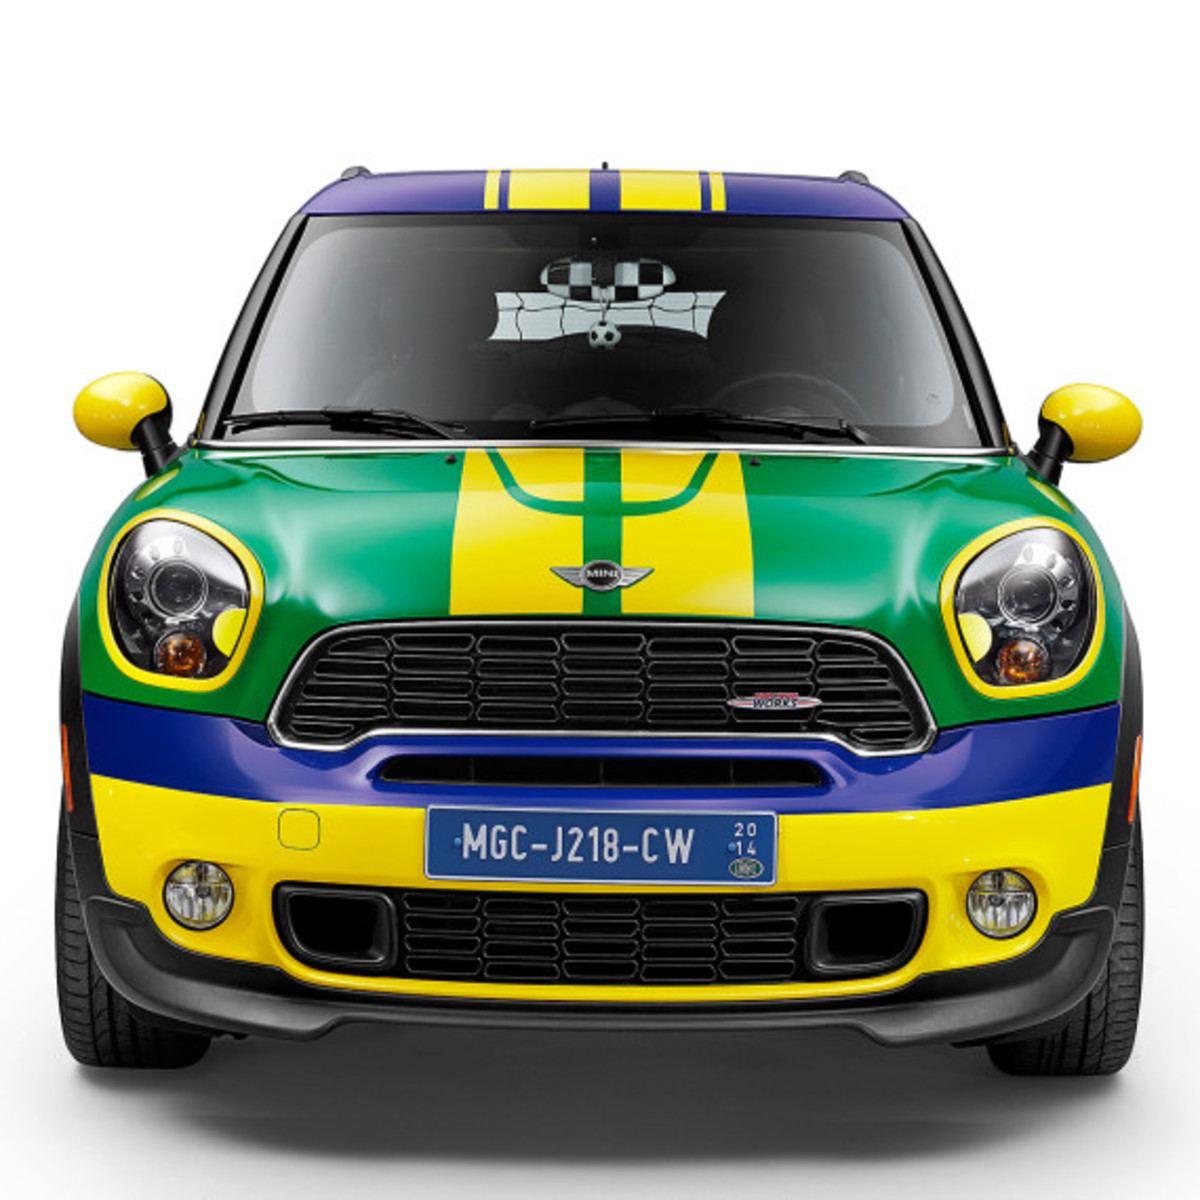 MINI Paceman GoalCooper - Featuring Soccer Pitch and Auto Tailgate Goalkeeper - 0